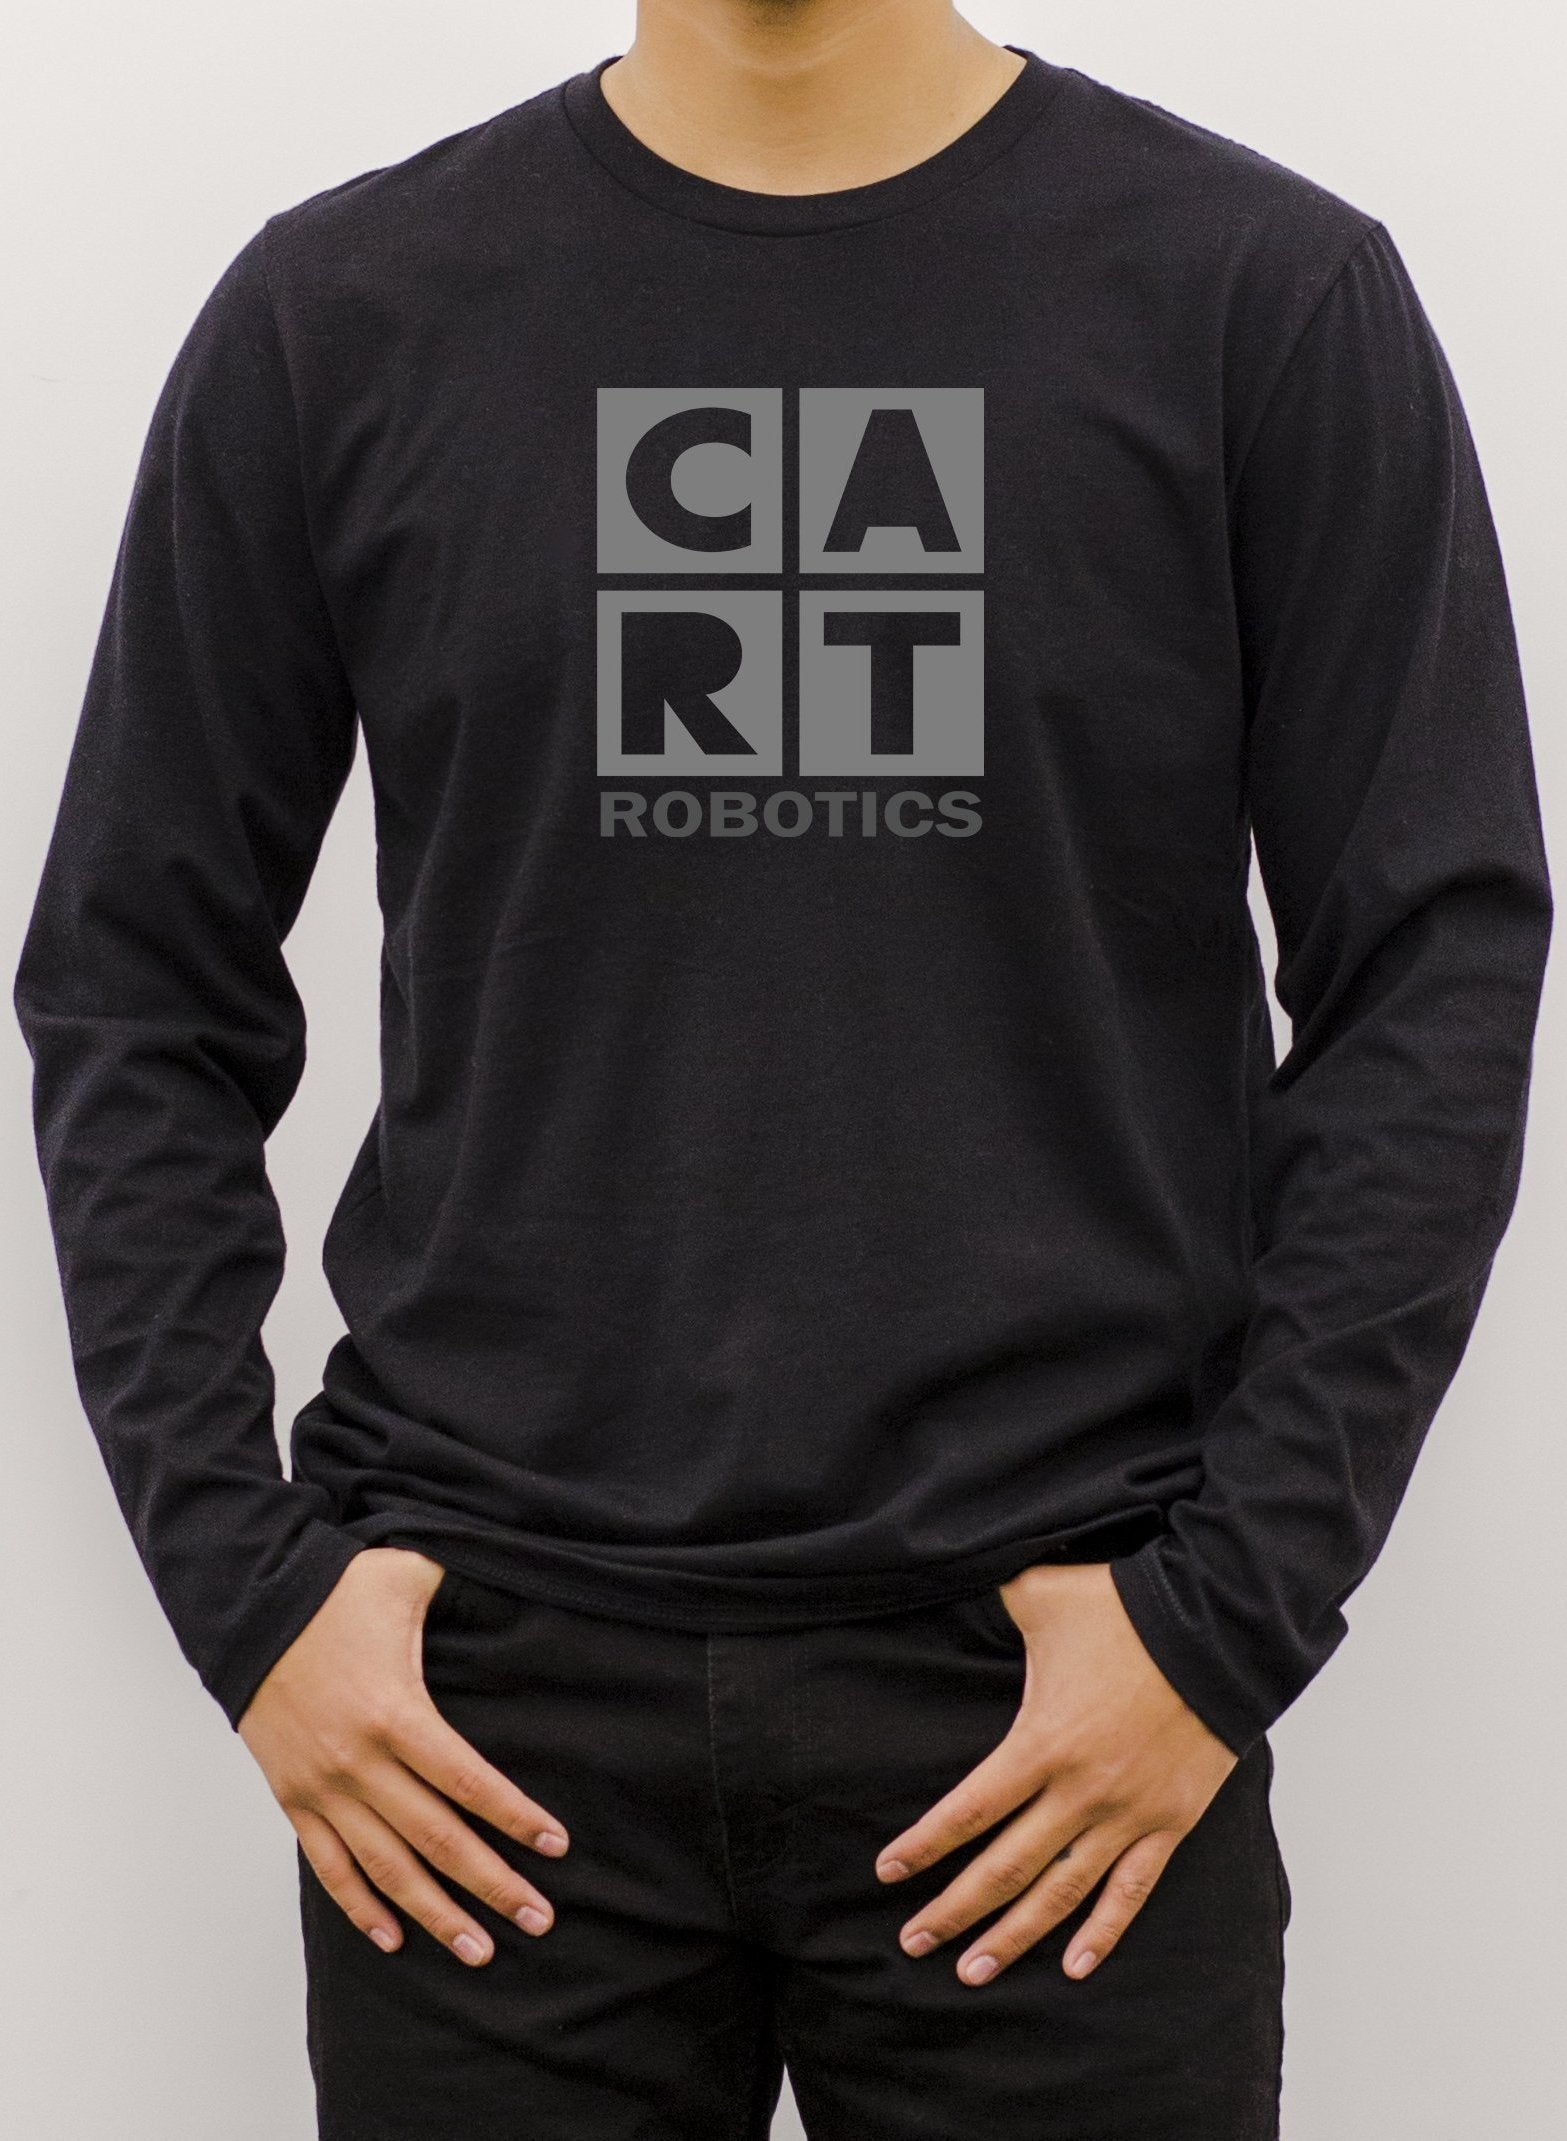 Unisex Long Sleeve T-Shirt - Robotics